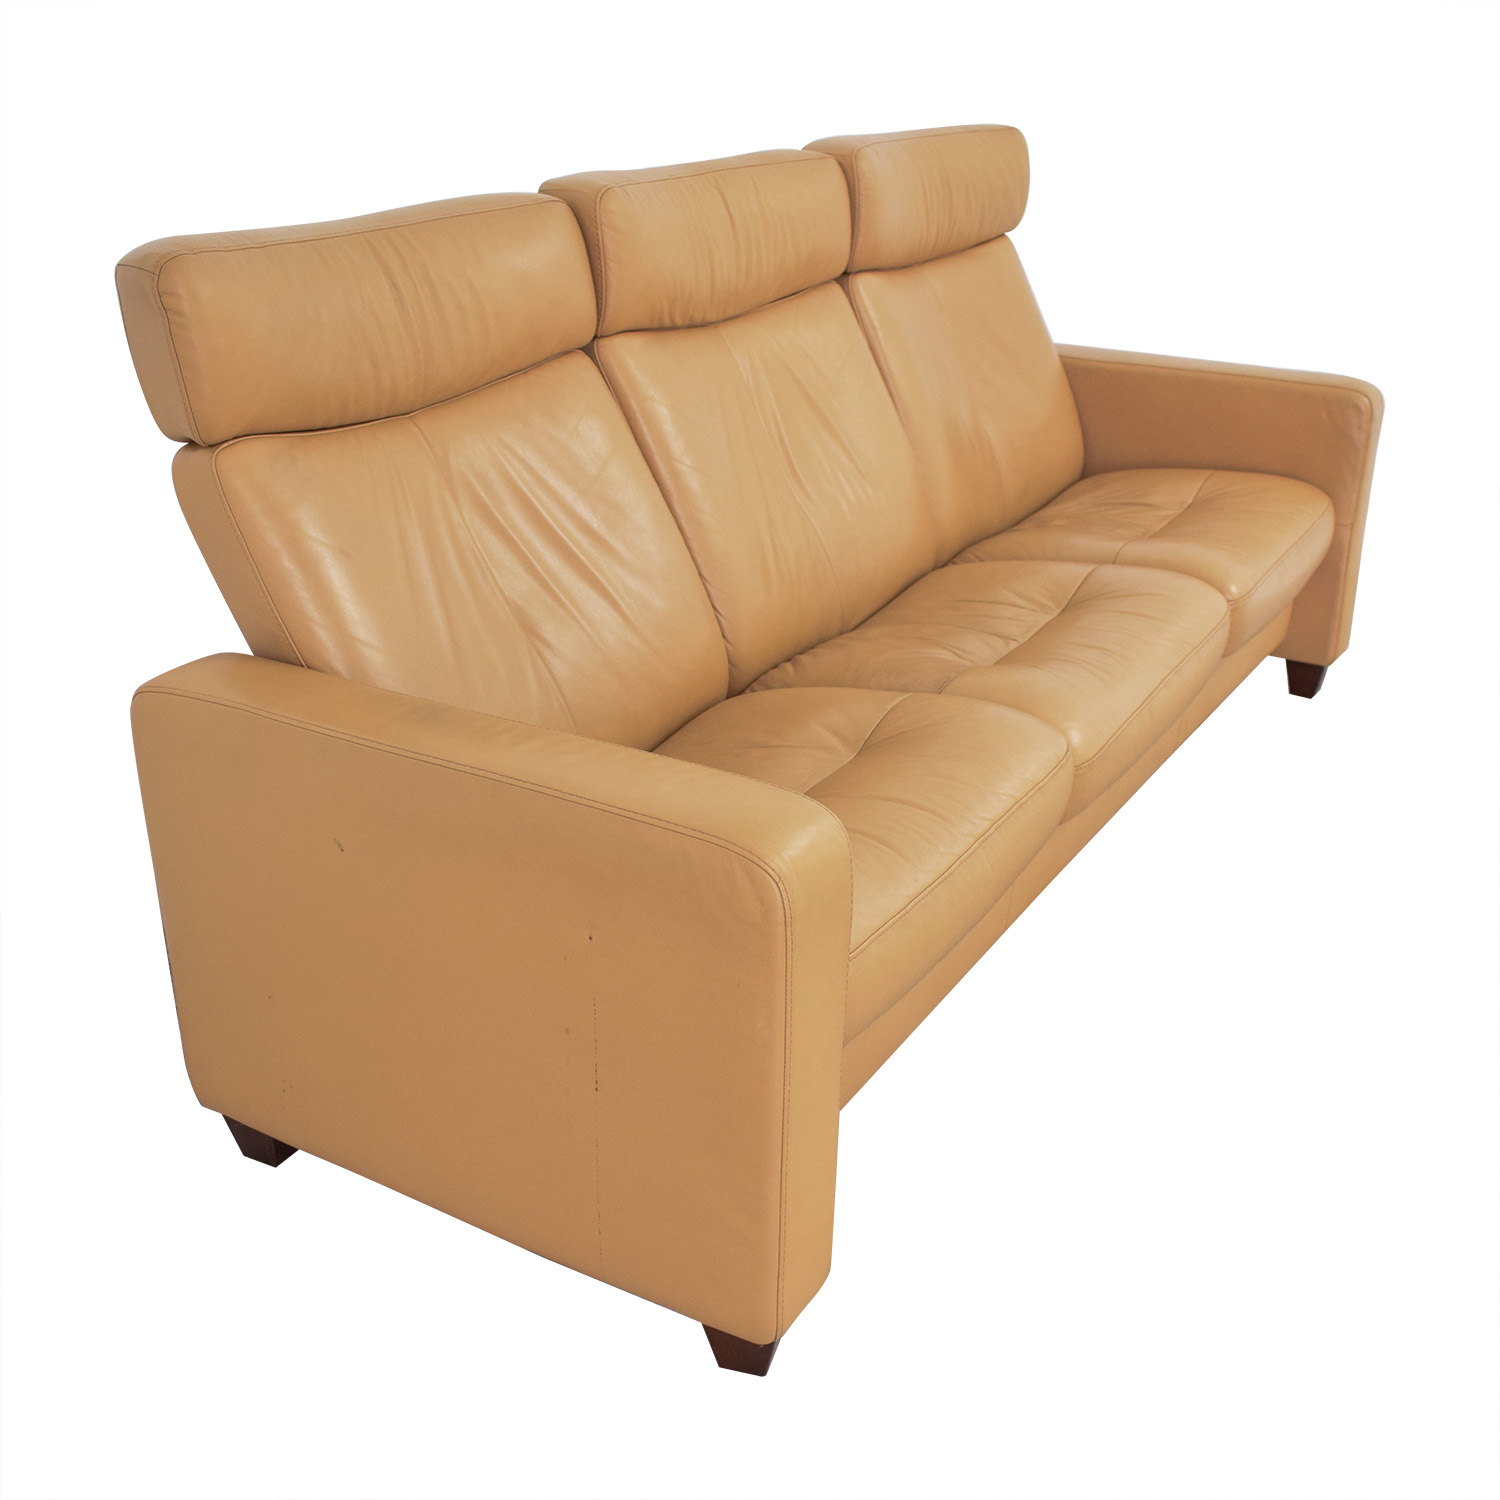 Ekornes Ekornes Stressless Sofa for sale